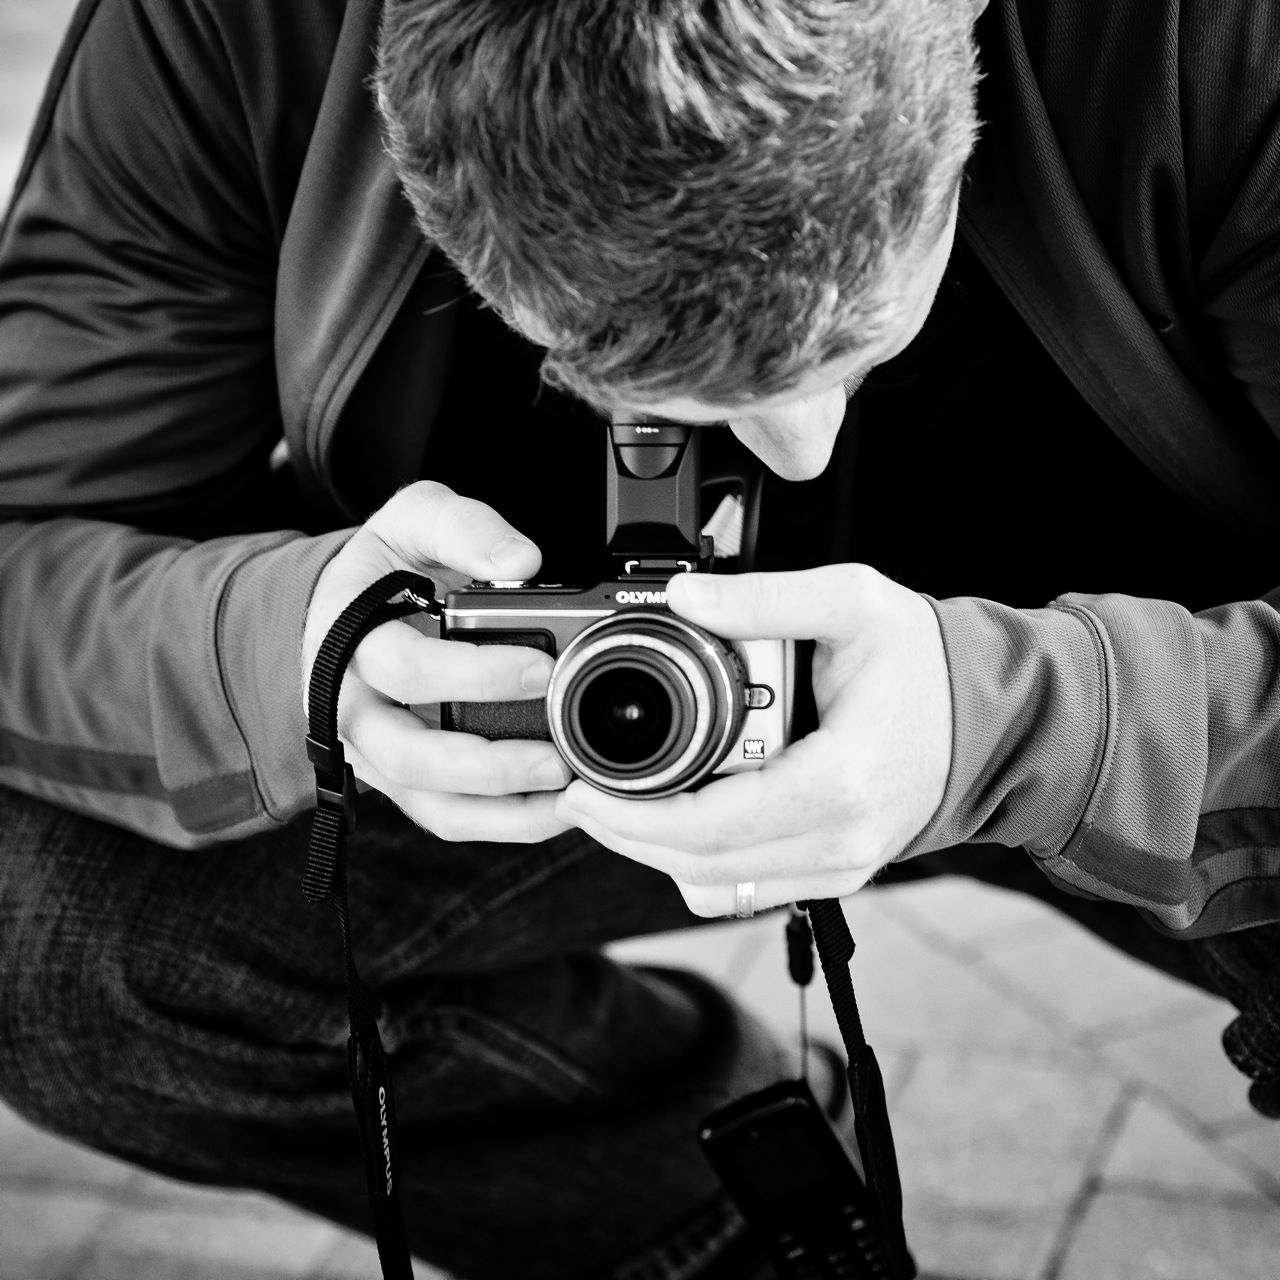 Raoul using the Olympus PEN E-P2